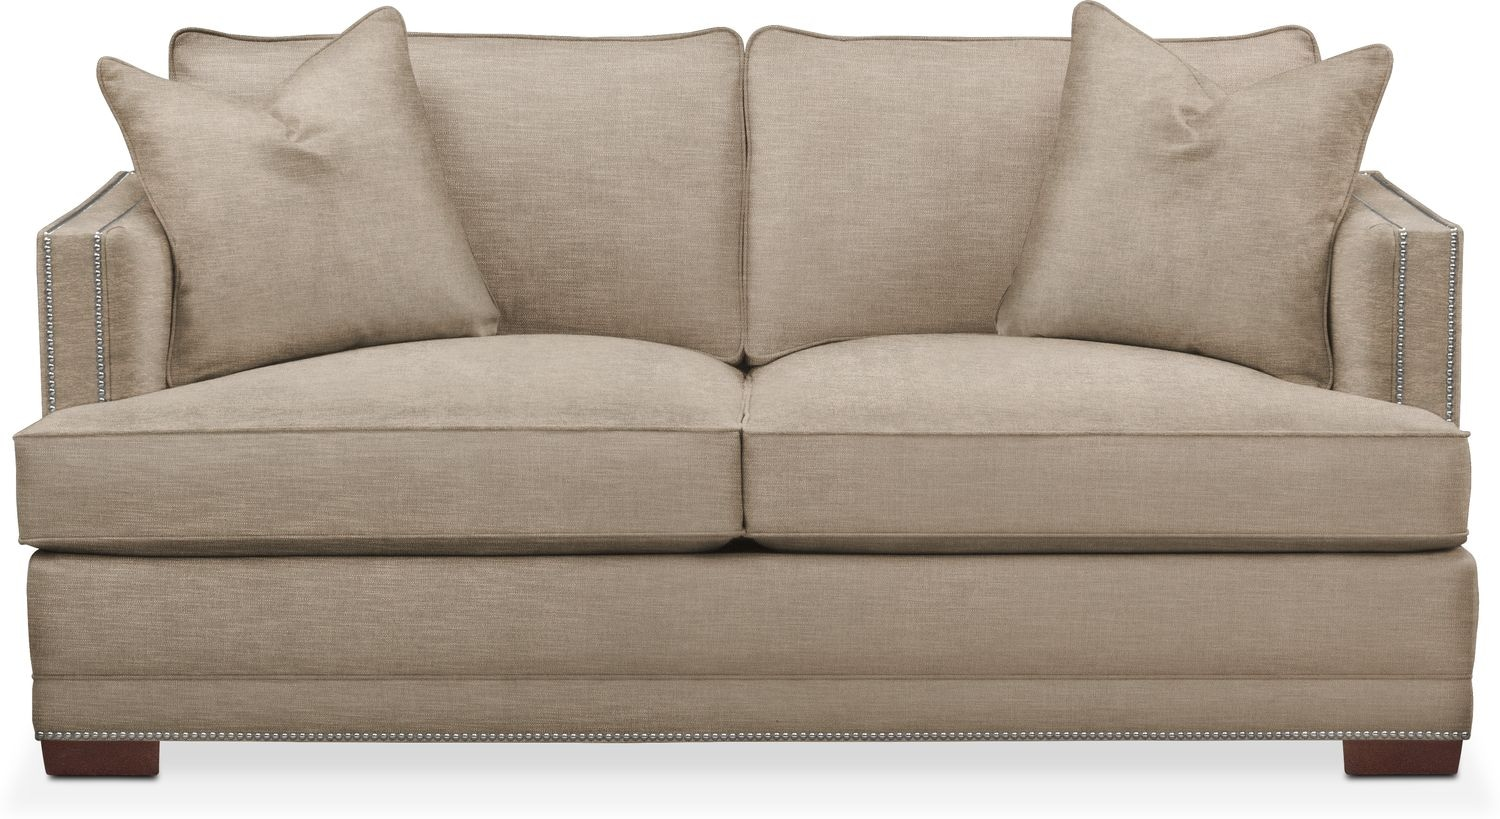 Gentil Living Room Furniture   Arden Apartment Sofa  Comfort In Dudley Burlap